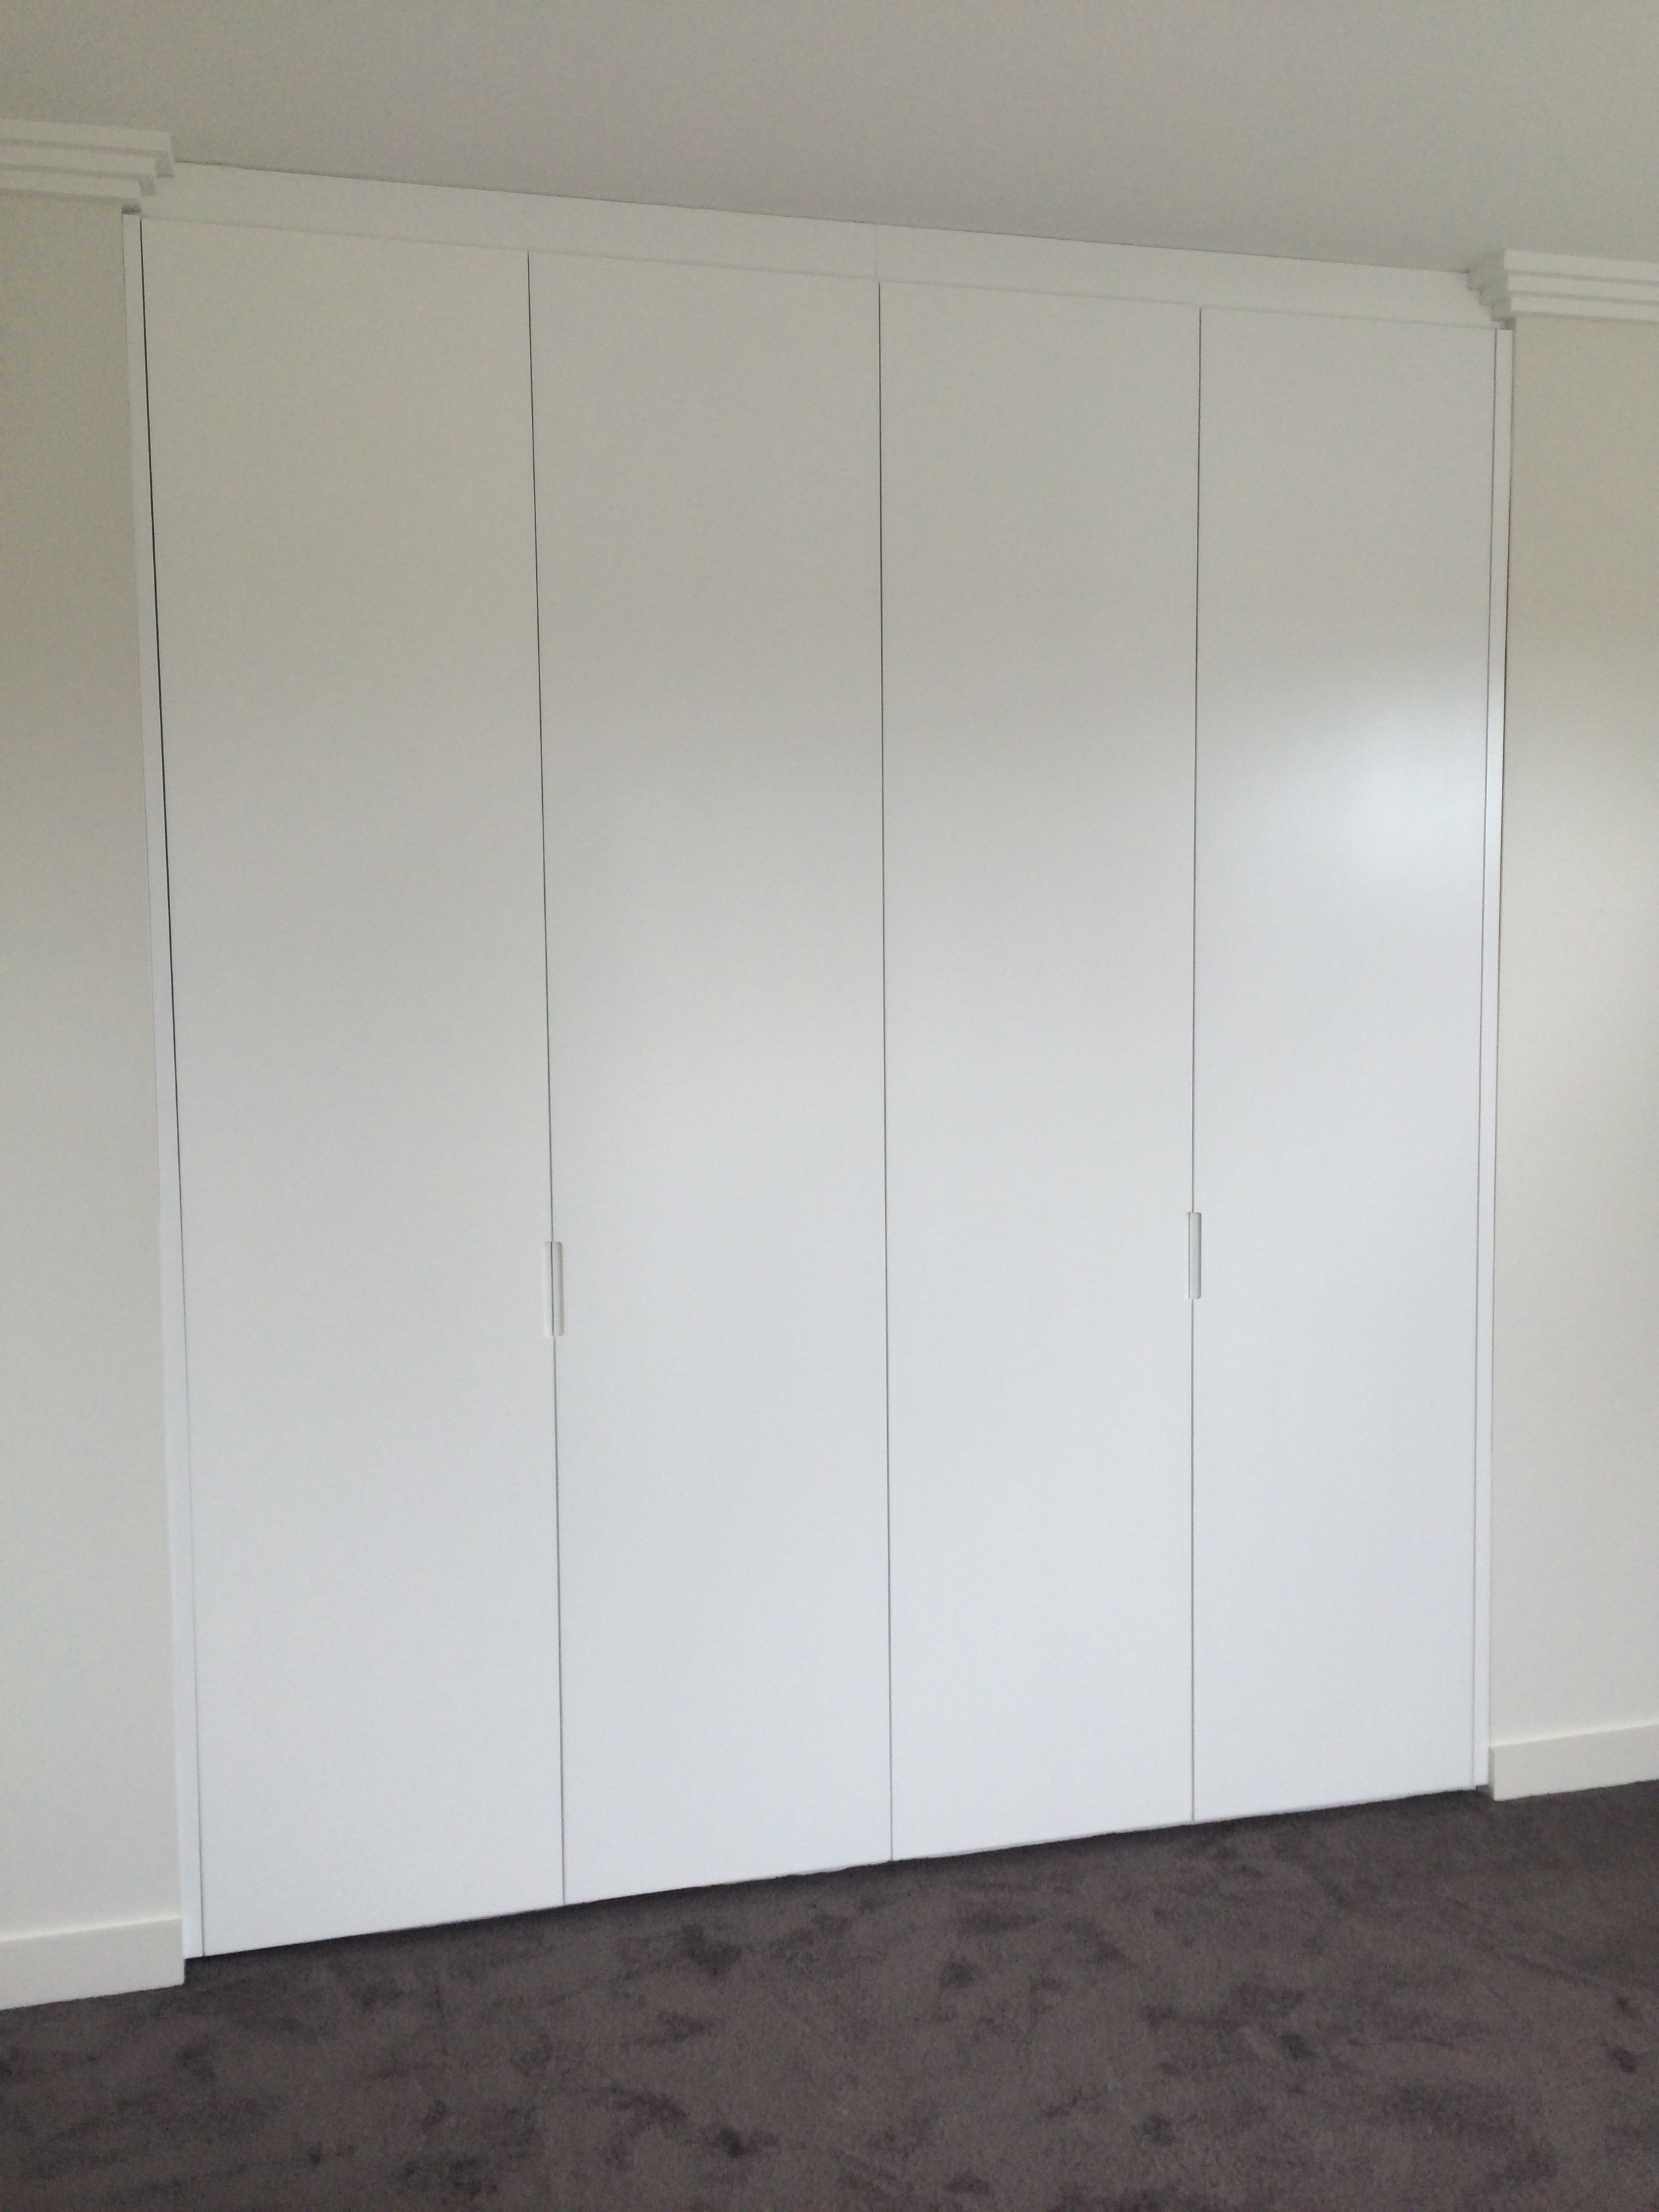 plain polyurethane hinegd doors with 200mm routed side handles.JPG